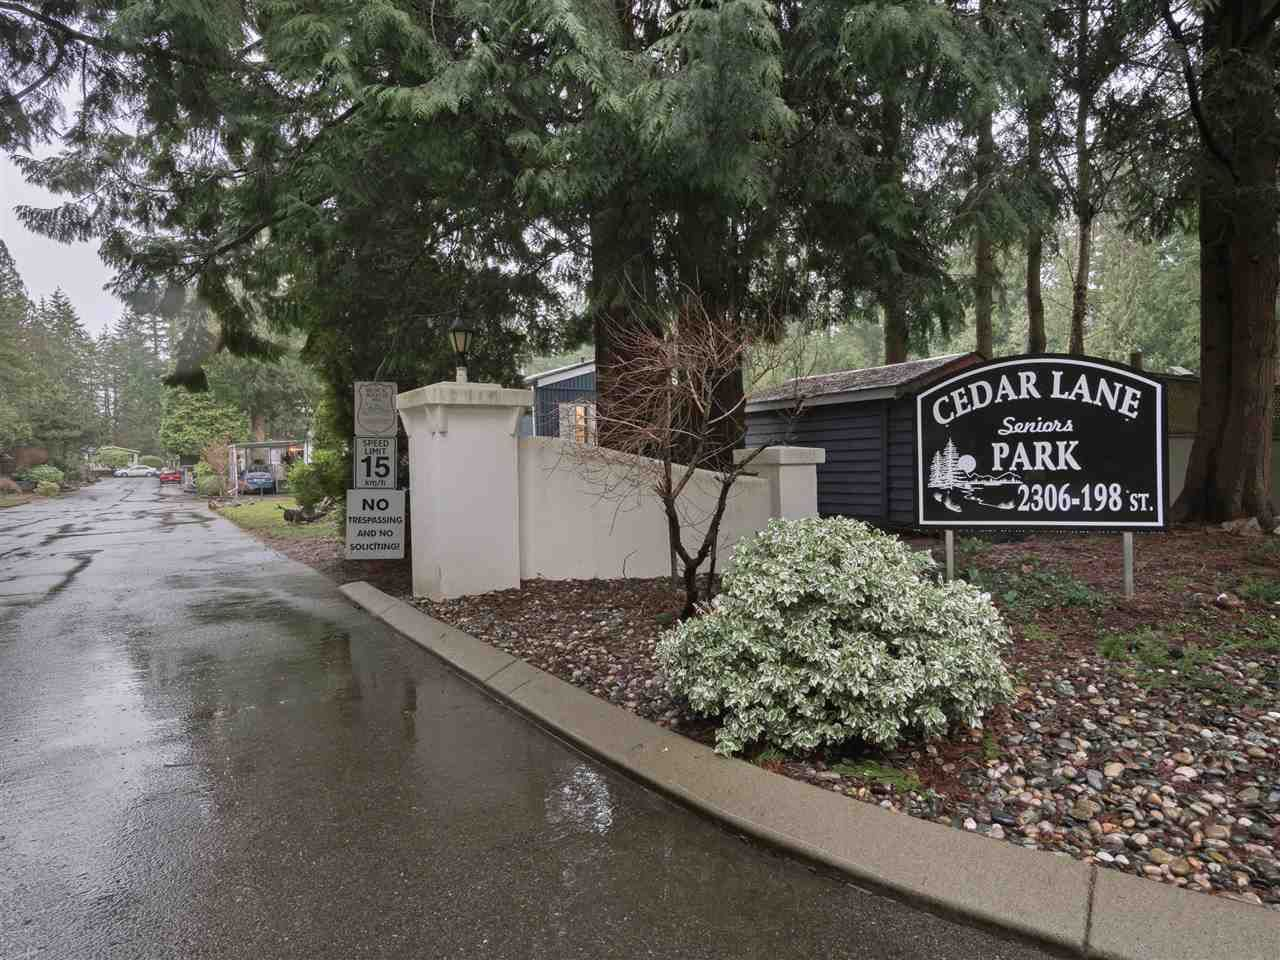 """Main Photo: 8 2306 198 Street in Langley: Brookswood Langley Manufactured Home for sale in """"Cedar Lane Park"""" : MLS®# R2237206"""